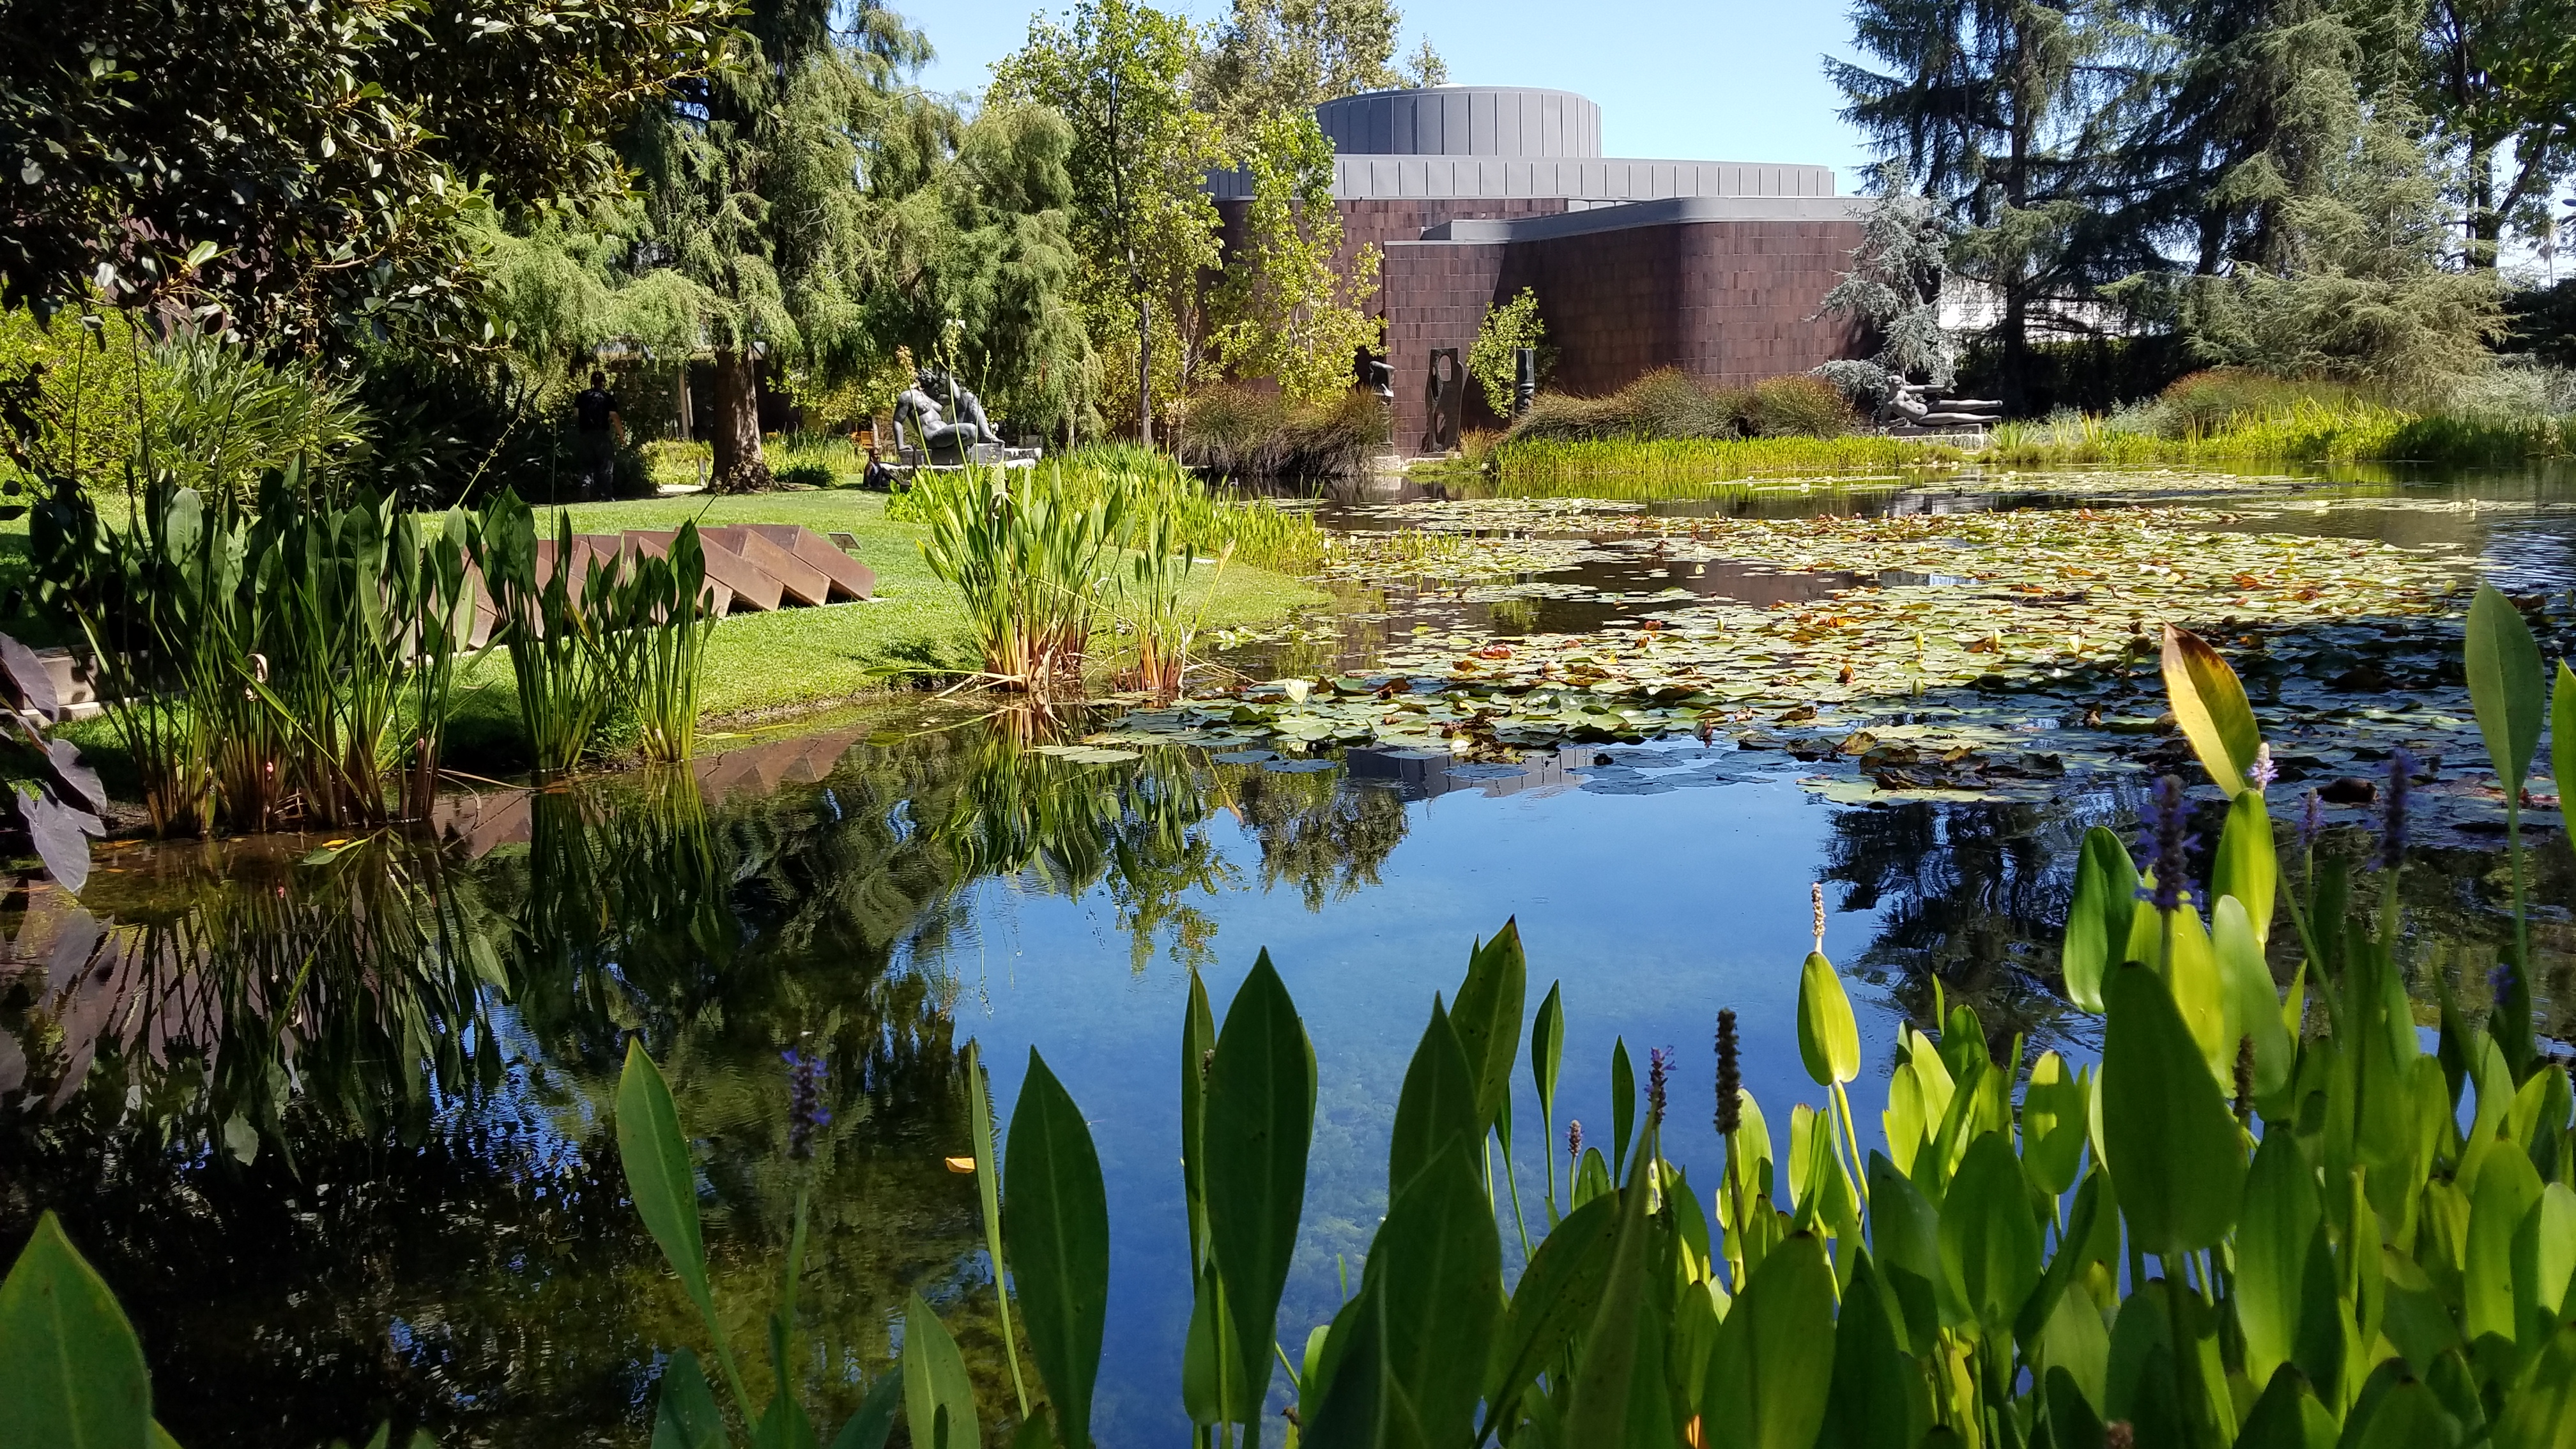 Pond with water lilies and pickerel weed